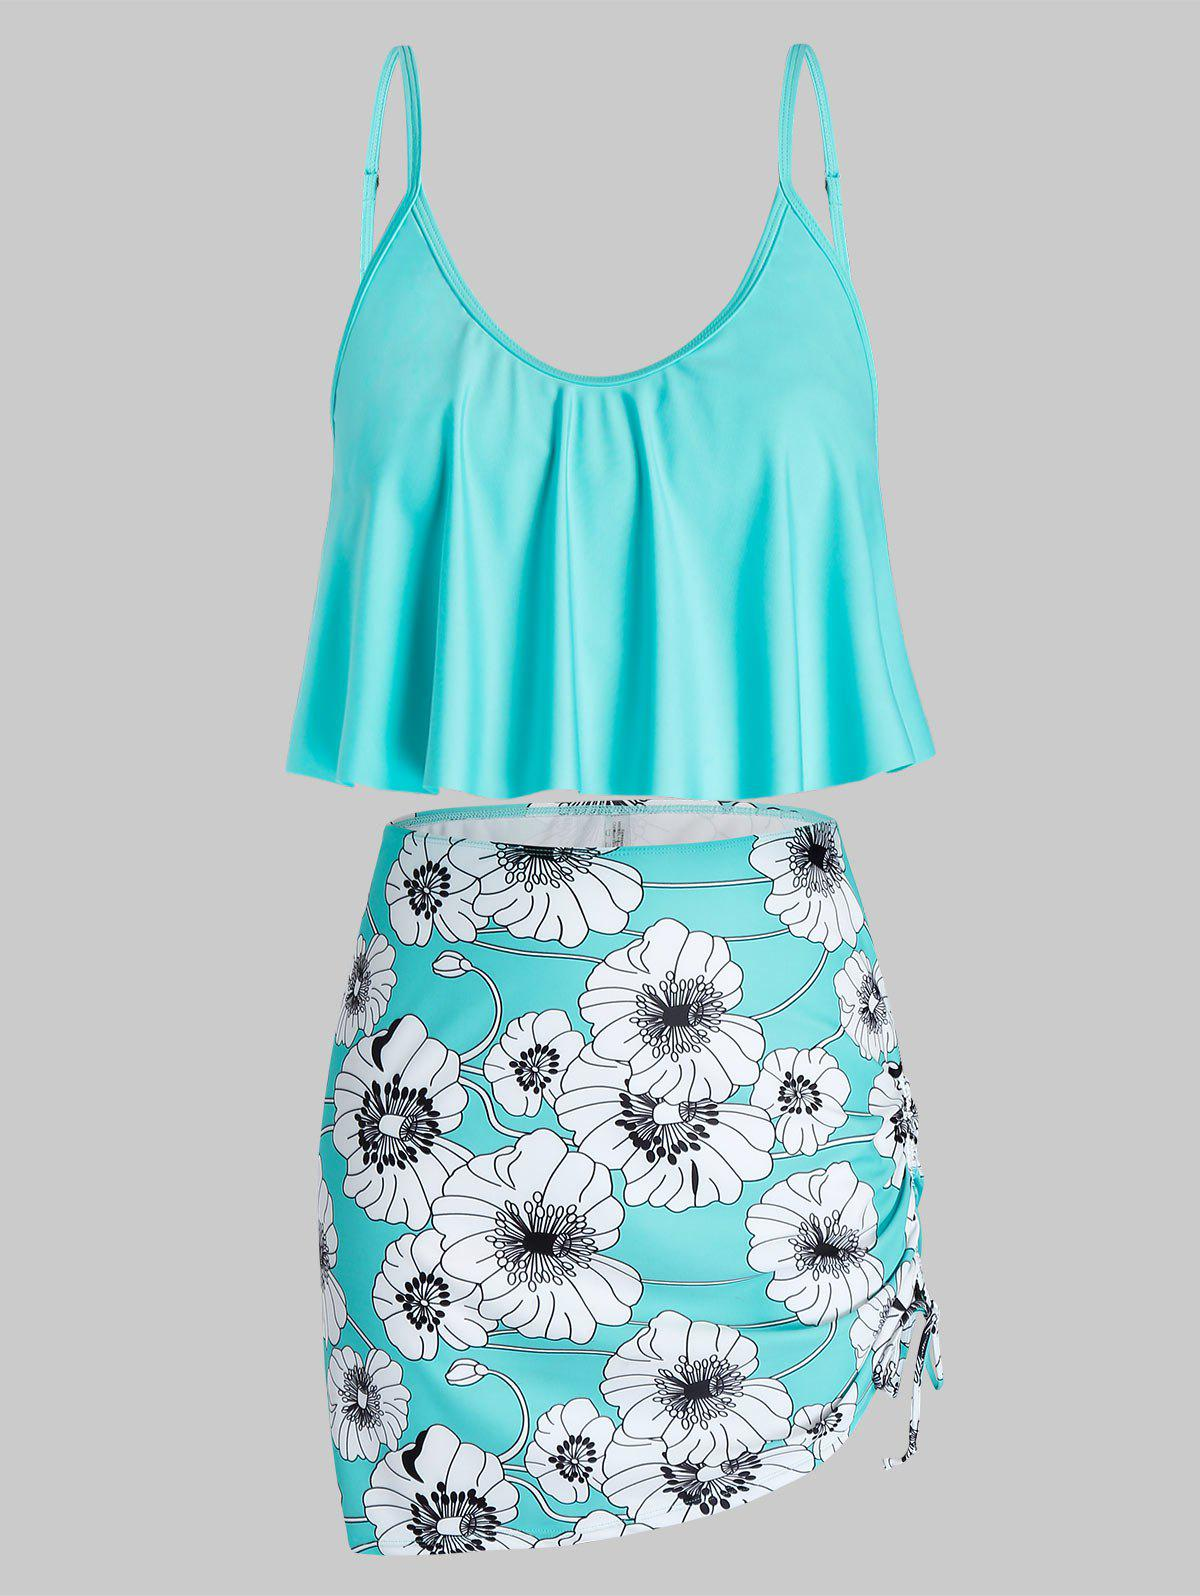 Plus Size Ruffled Cinched Floral Print Three Piece Swimsuit - CELESTE 5X